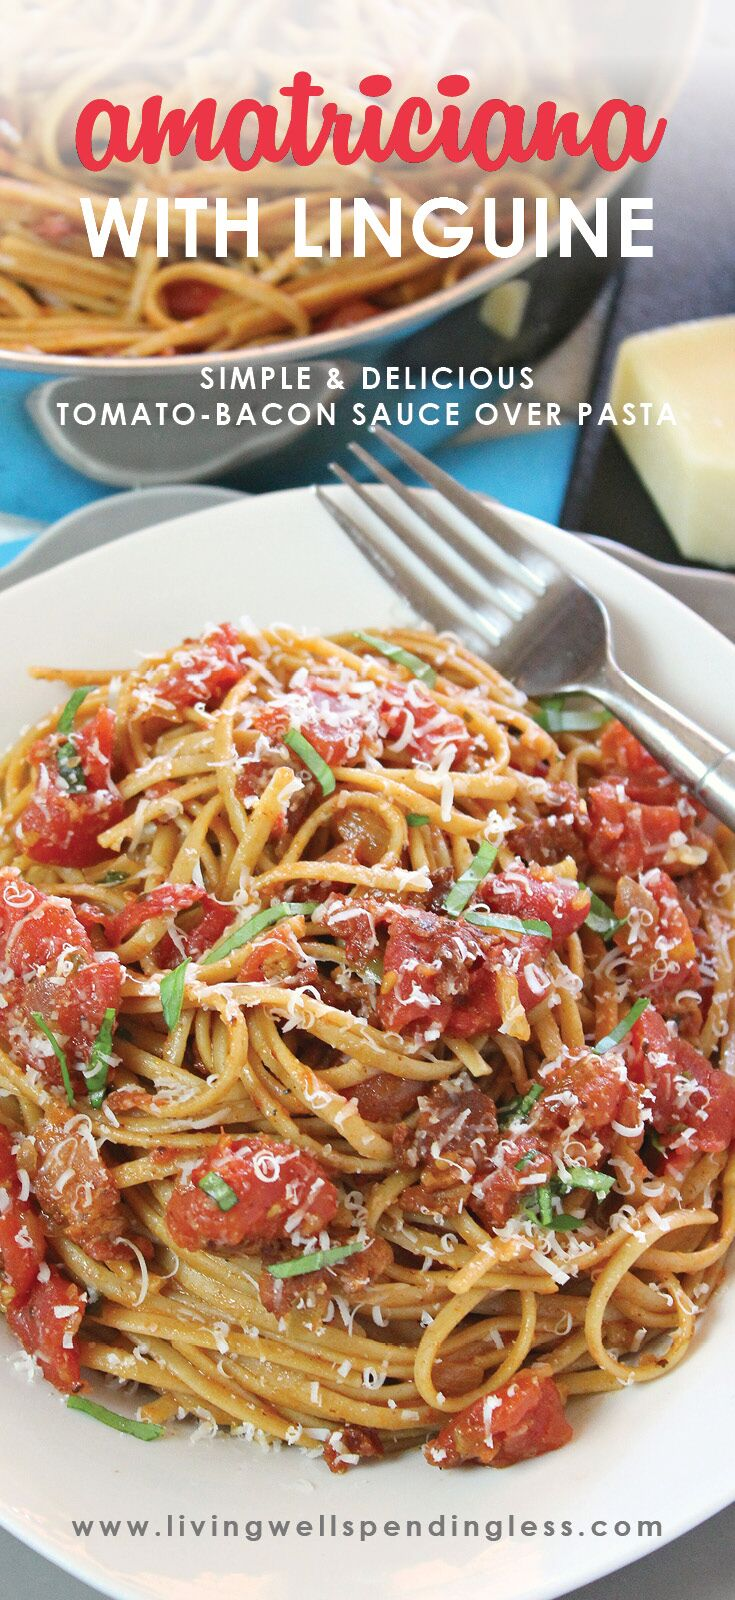 Amatriciana with Linguine   Simple Spaghetti Recipe   Easy Pasta Dishes   Food Made Simple   Simple Pasta Dinner